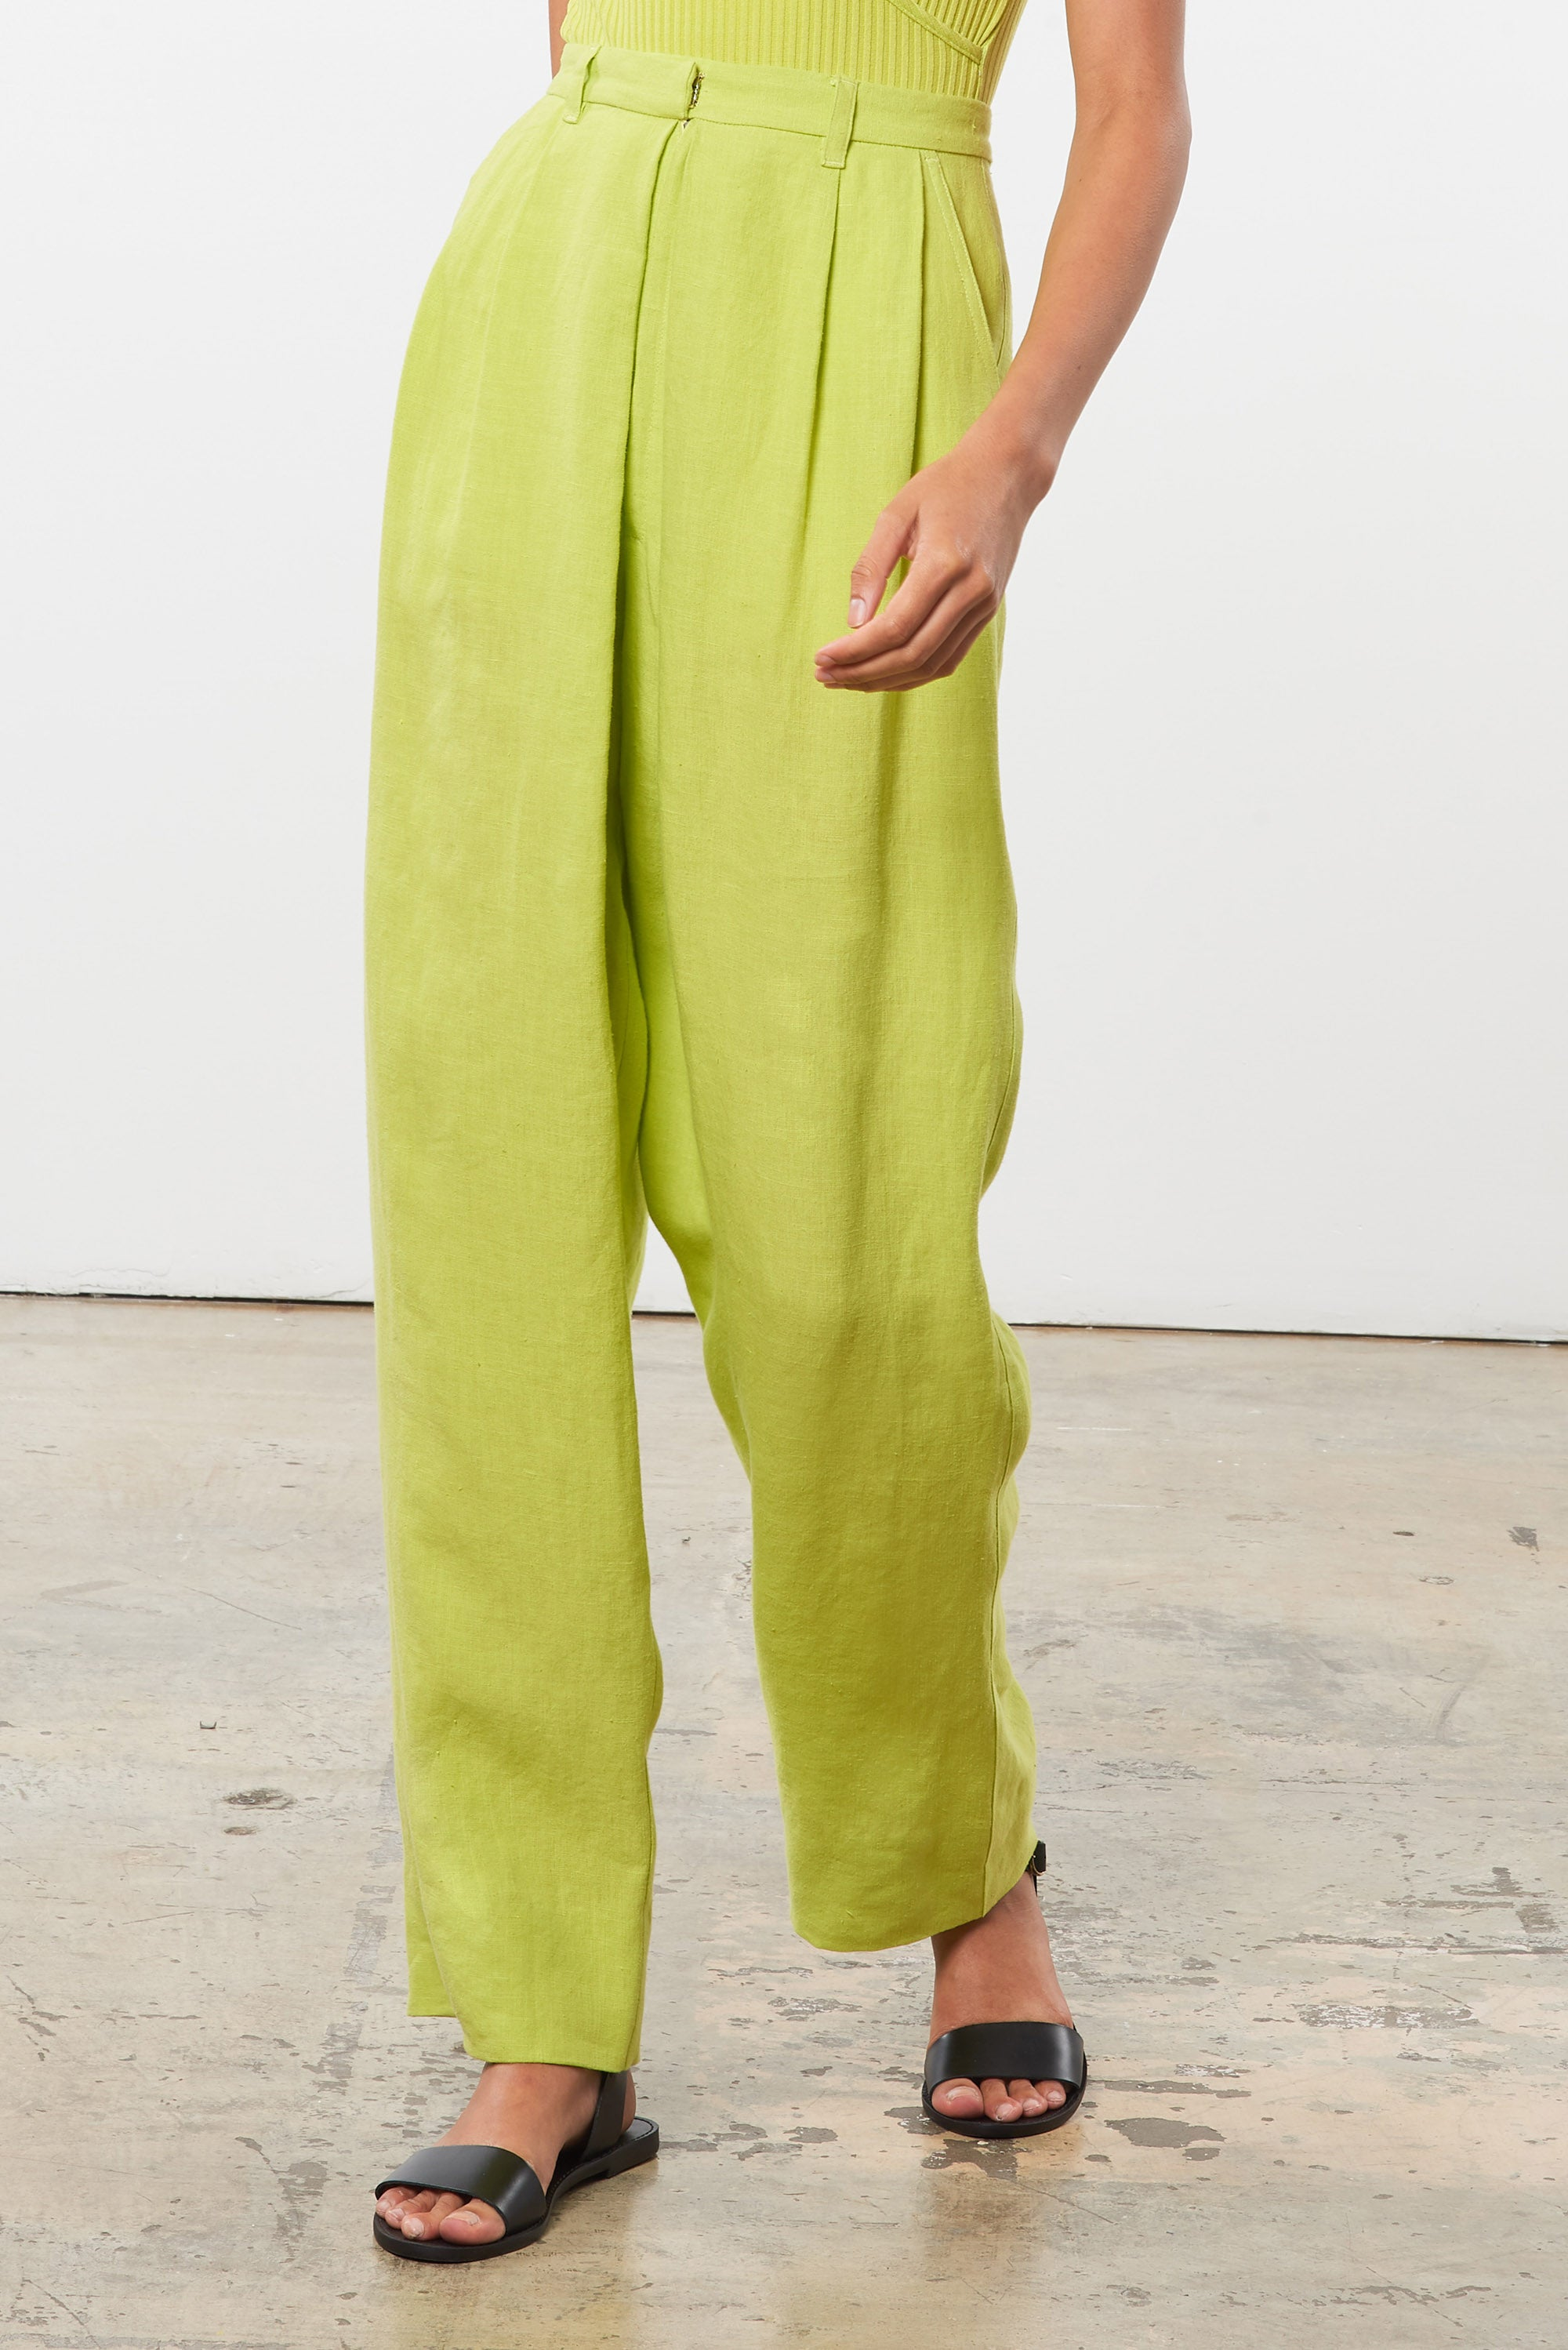 Mara Hoffman Green Eldora Pant in hemp (front detail)